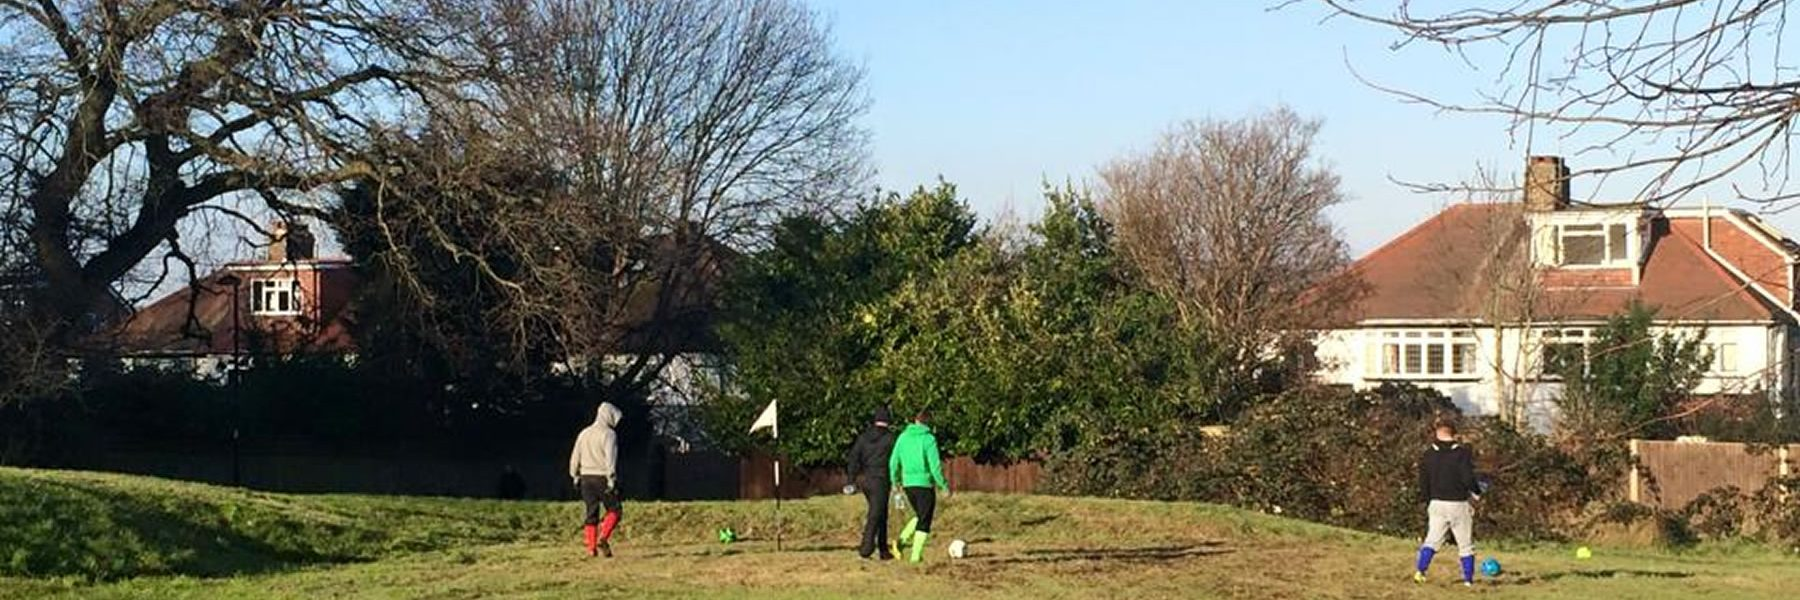 hanger hill park footgolf